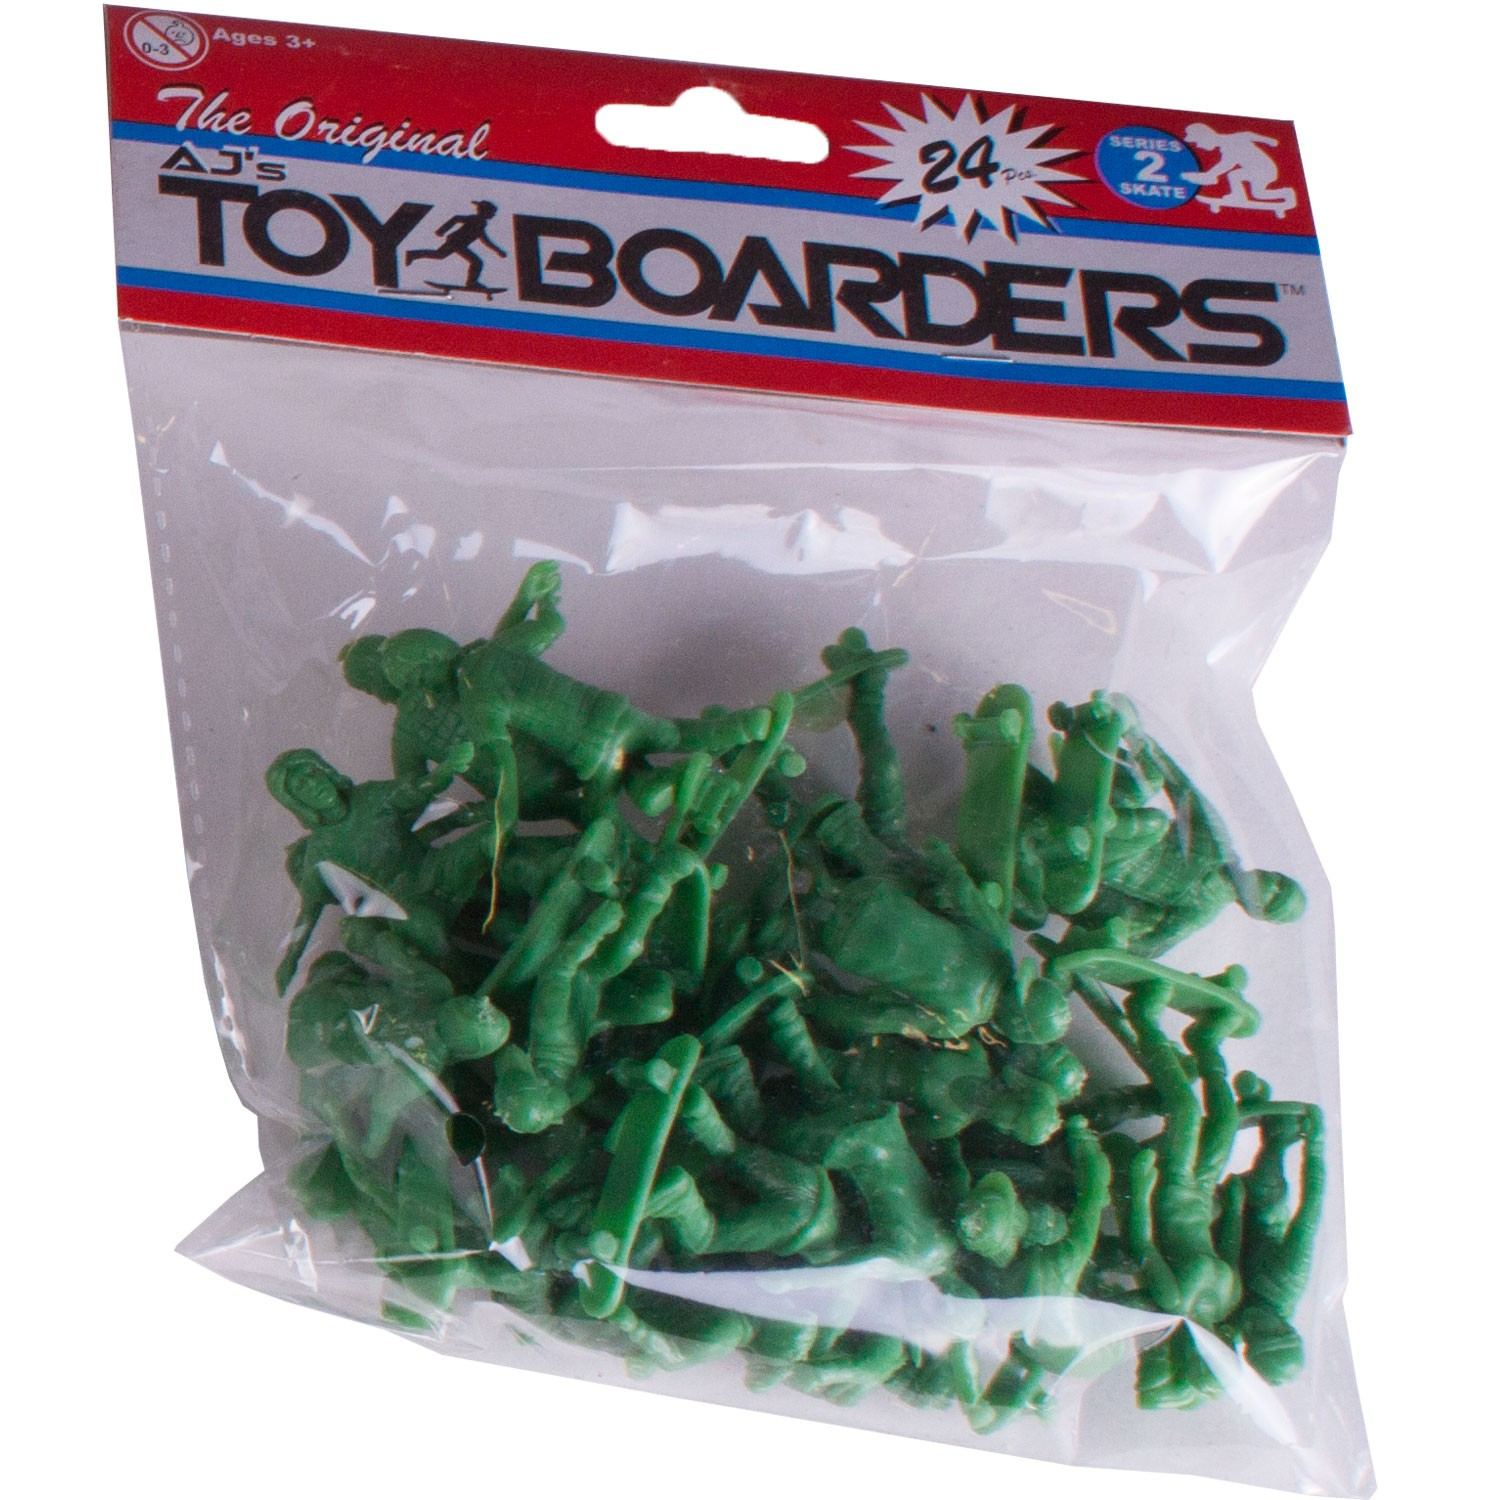 AJ's Toy Boarders 24-Pack - Skate - Series 2